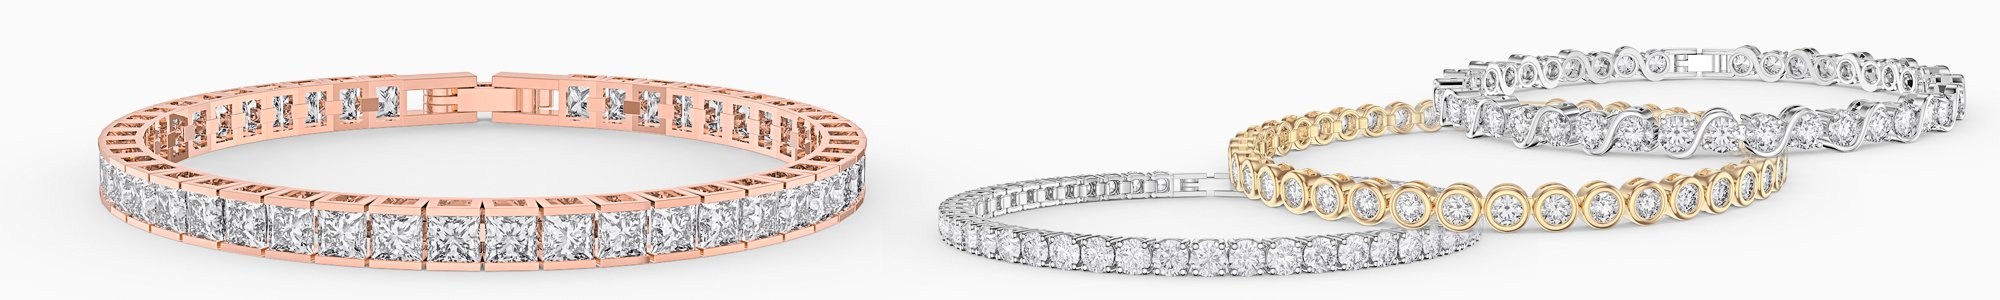 Bracelets for everyone - from precious gemstones to Diamonds. From Silver to 18ct Gold.